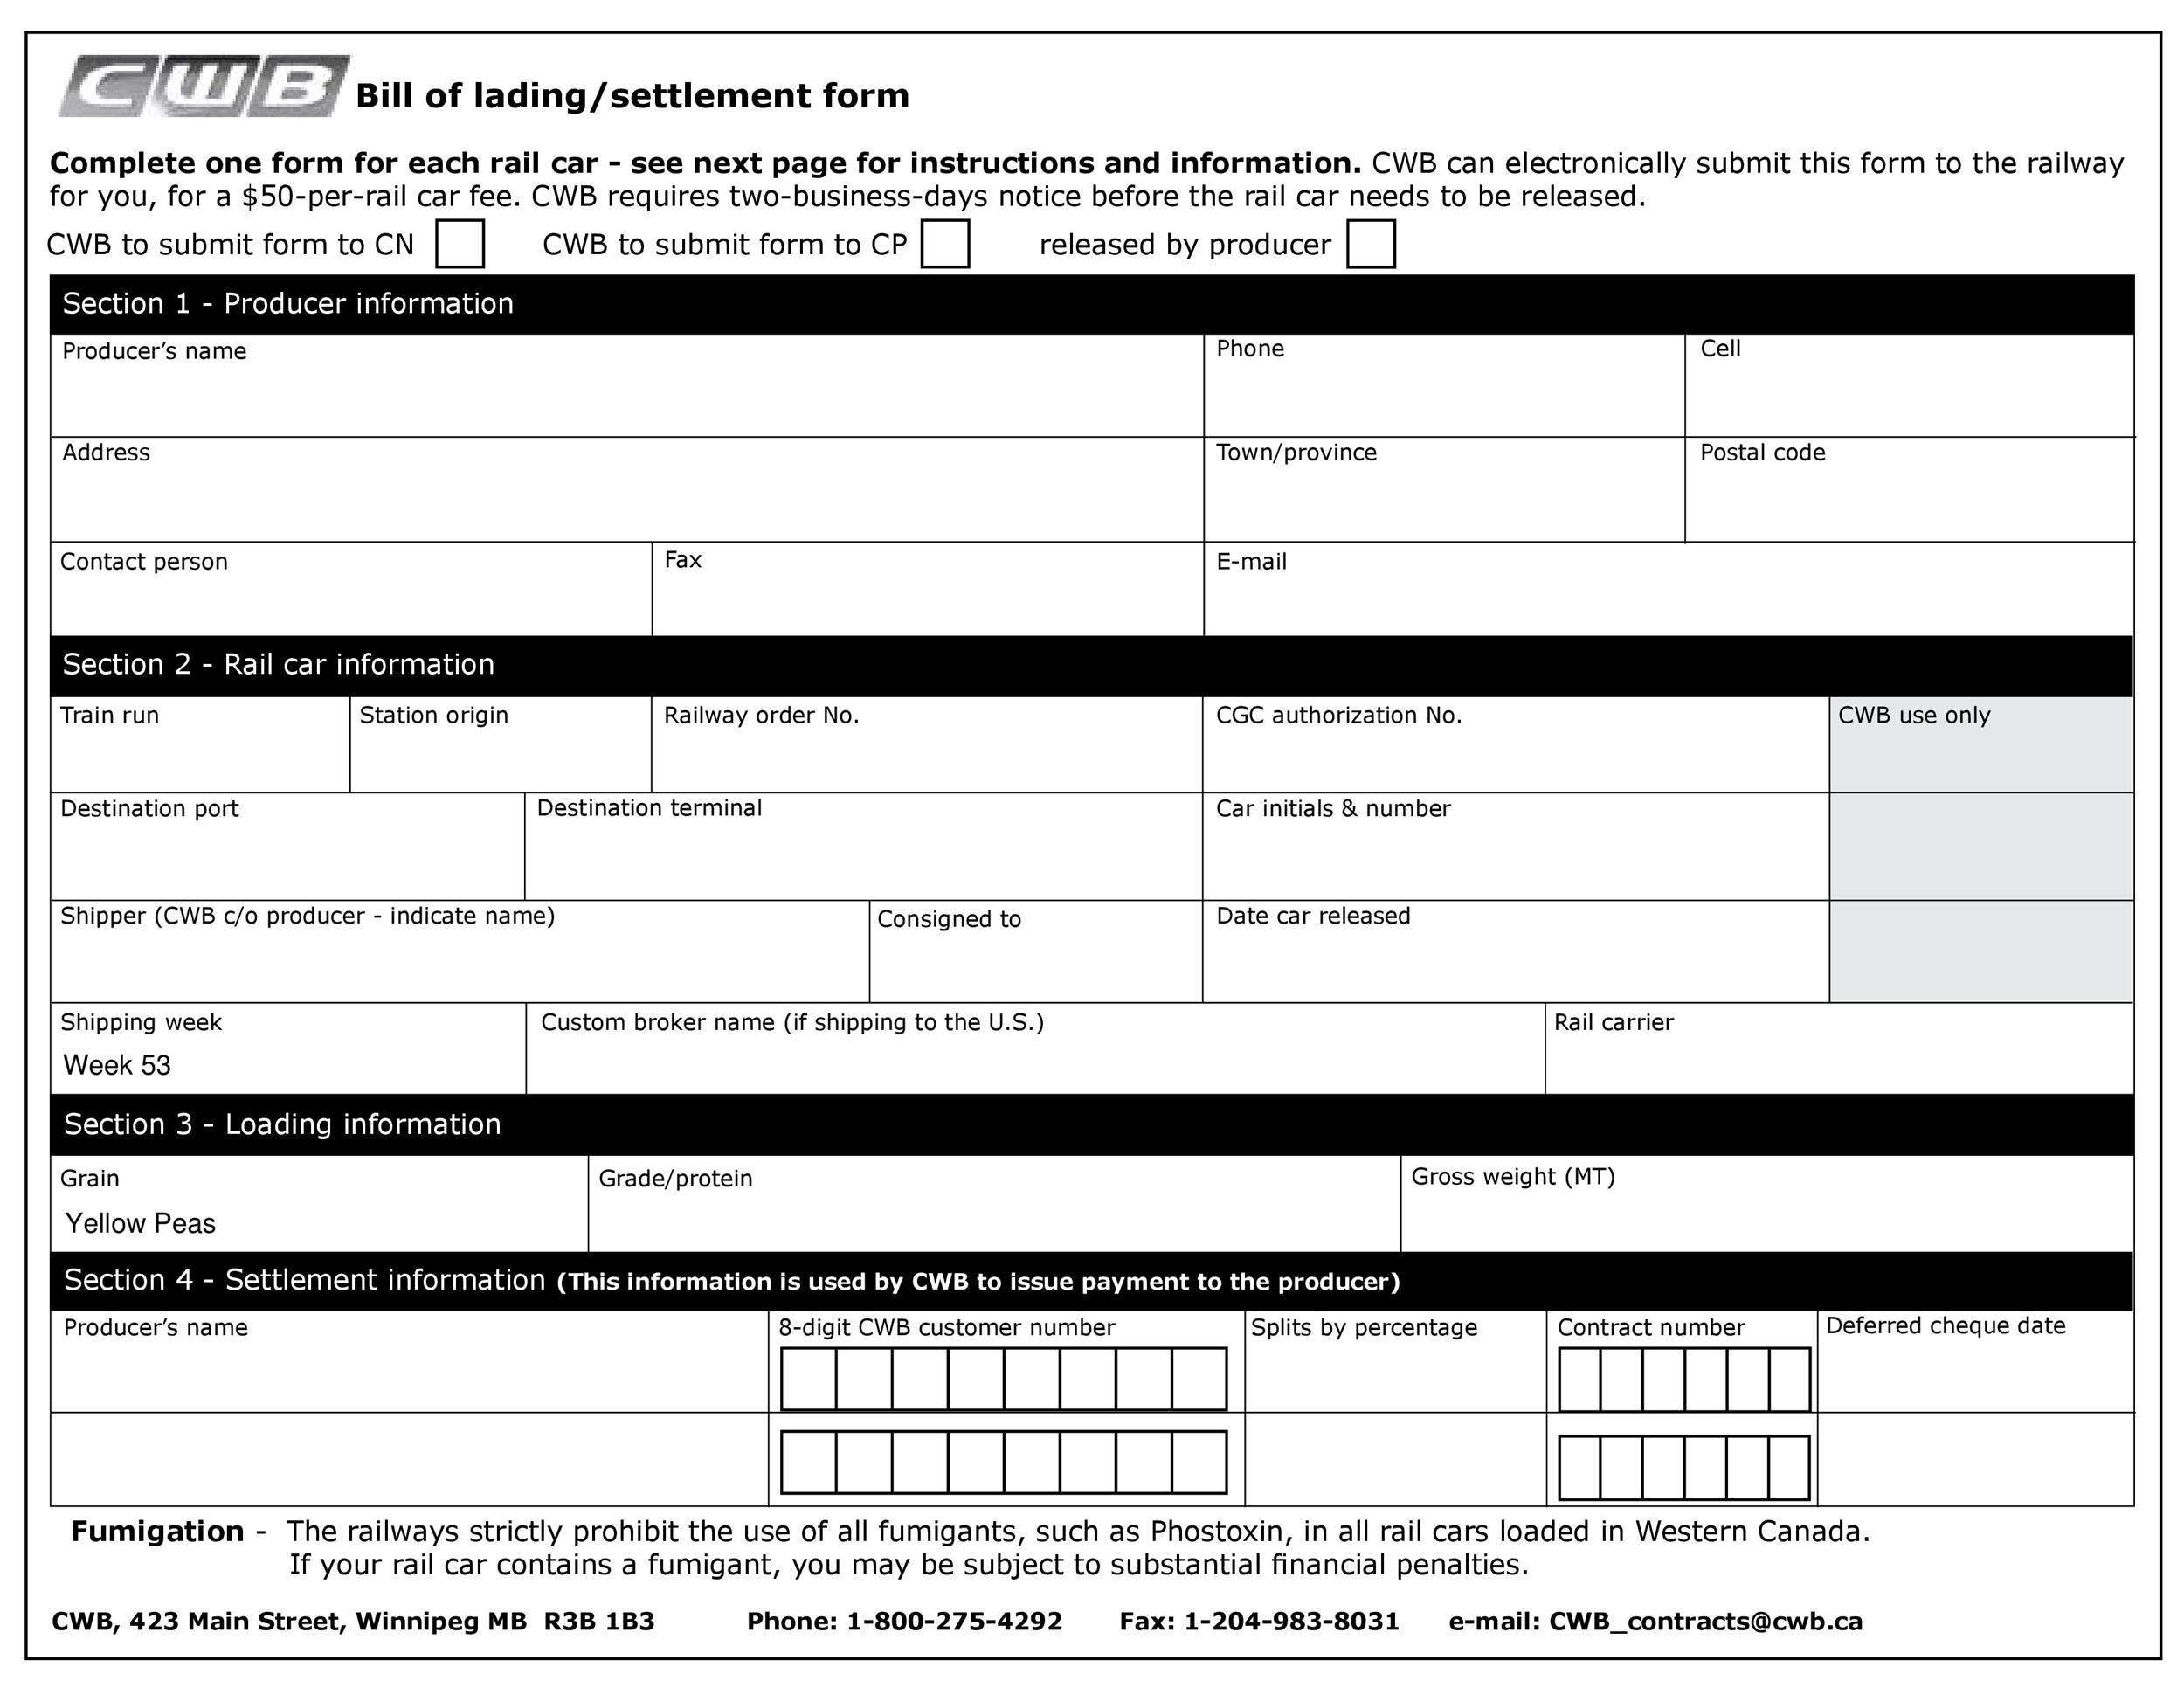 40 Free Bill Of Lading Forms & Templates - Template Lab